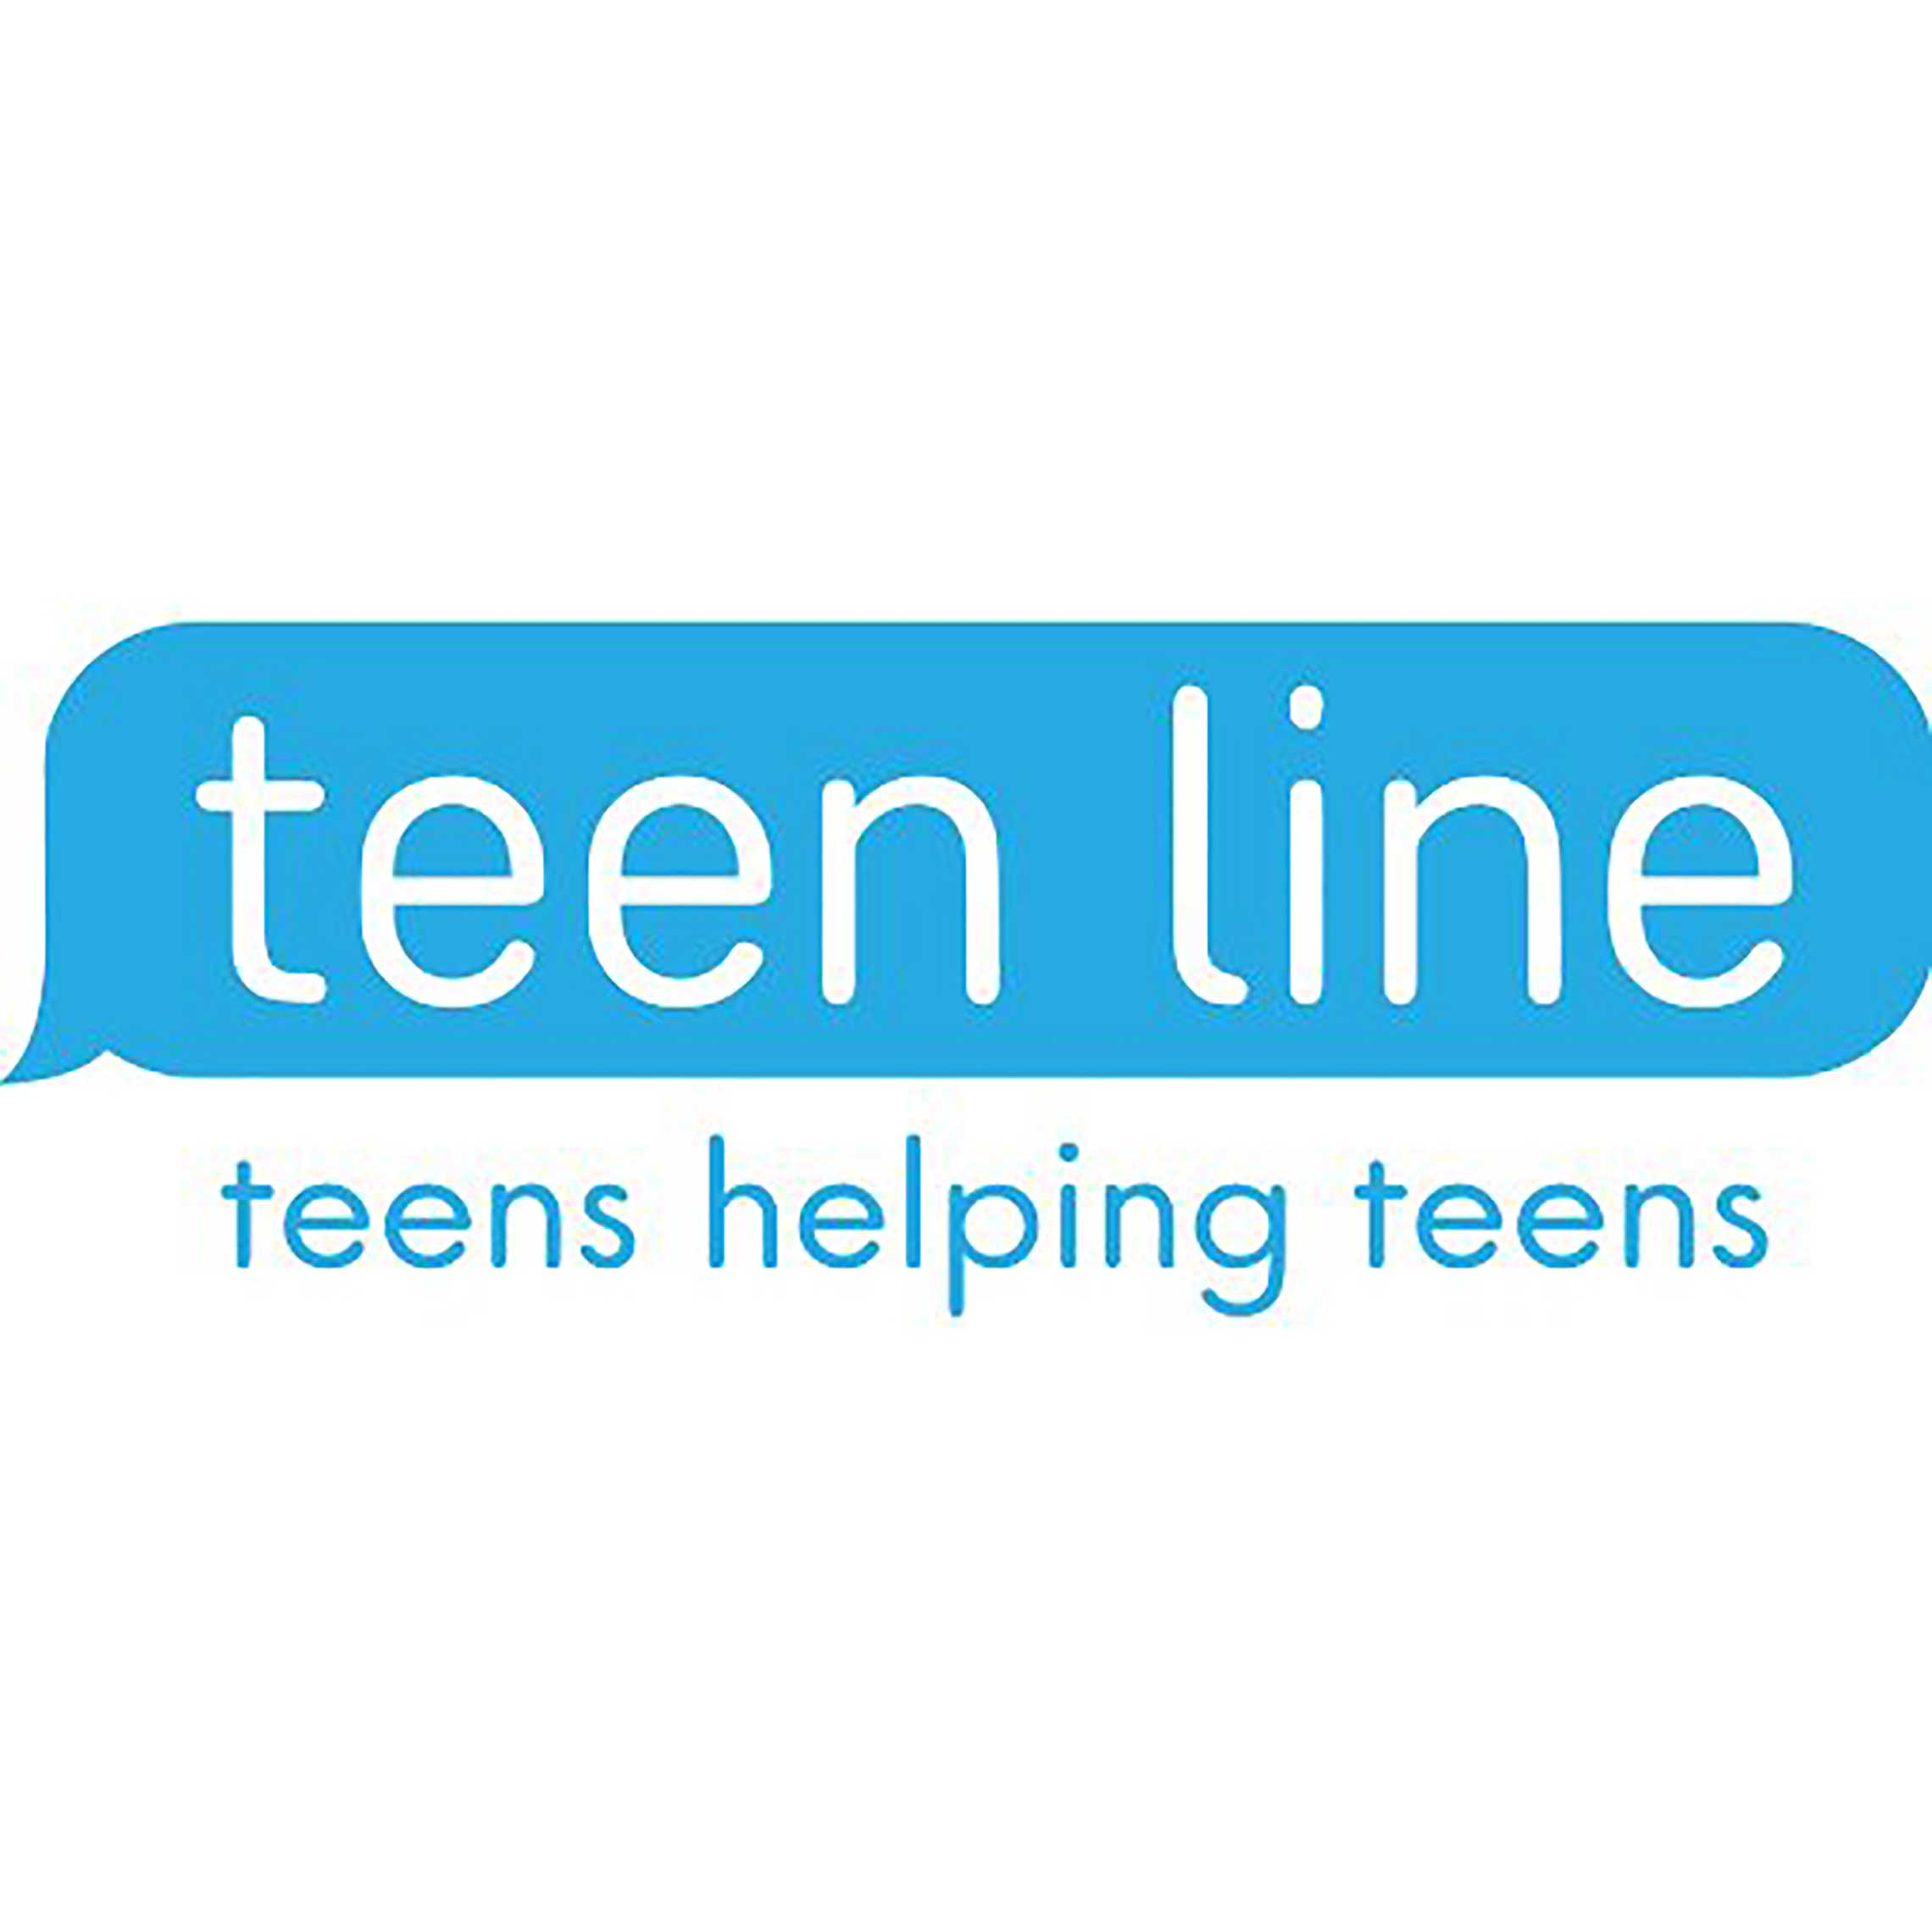 - An amazing resource for struggling teens. If you suspect your teen is struggling, but won't talk to you - give them this info. If your teen has a problem or just wants to talk with another teen who understands, then this is the right place! Teens helping teens for 34 years.